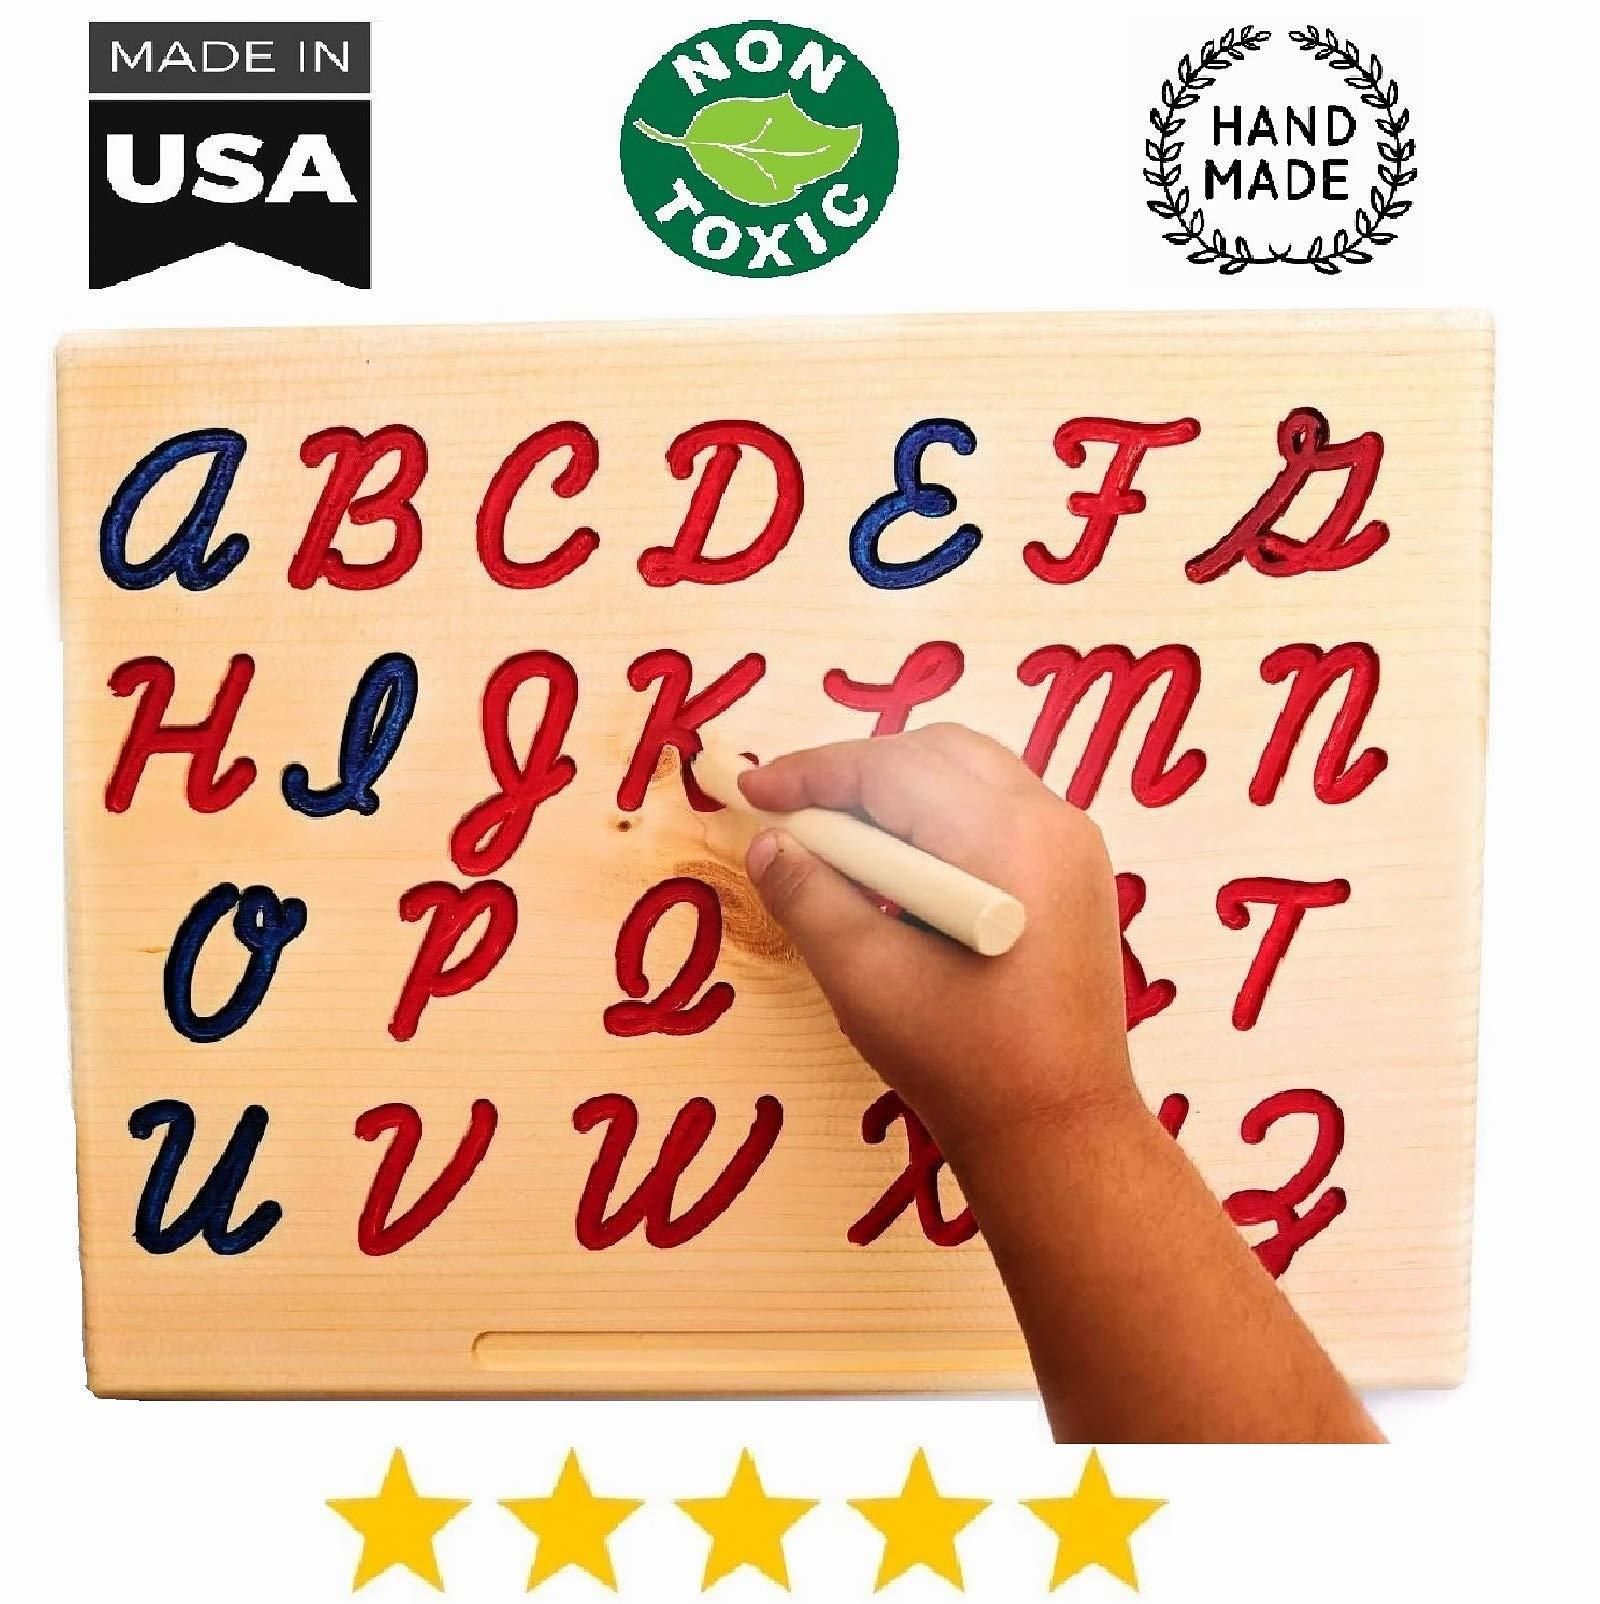 Montessori Uppercase / Lowercase Cursive Alphabet | Cursive ABC Letters Tracing Board with Wooden Pen by Cosmo-Crafts (A- Uppercase NO Color) by cosmo-crafts.com